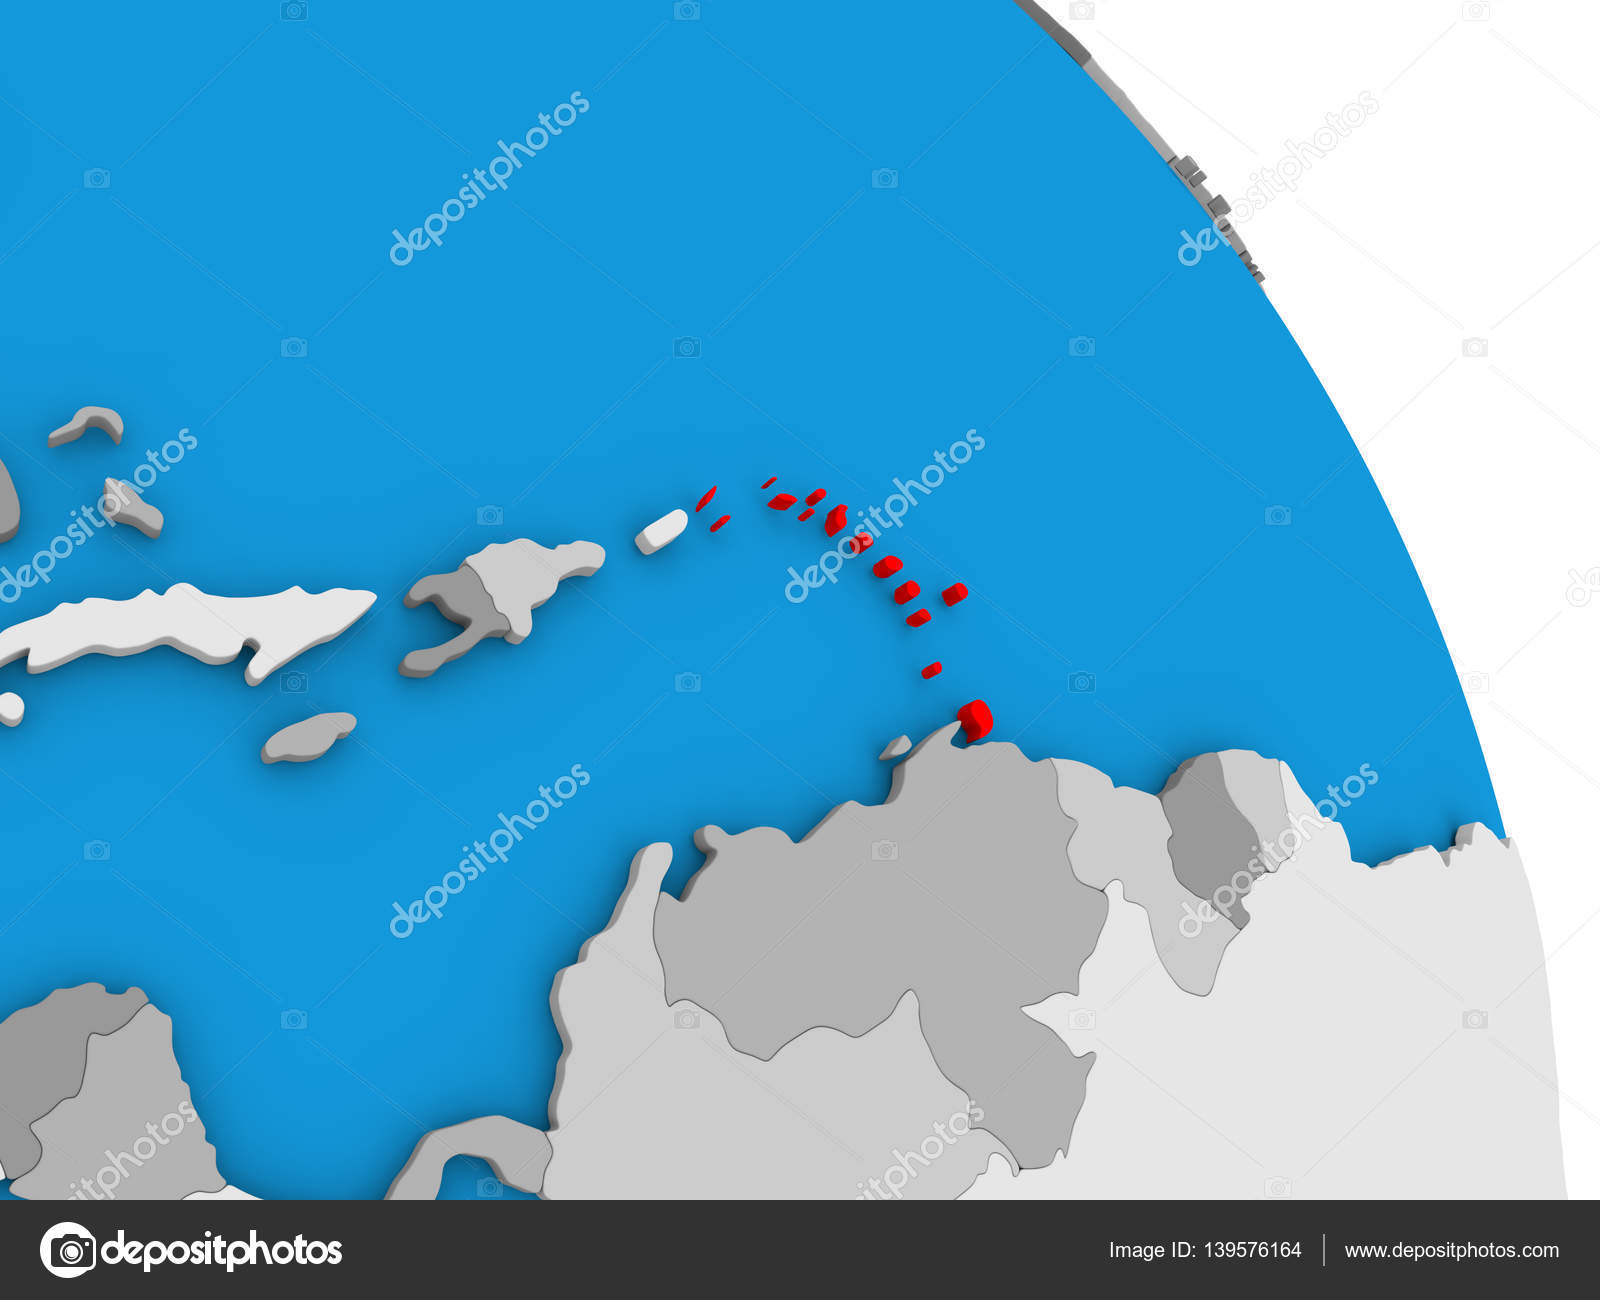 Caribbean on globe stock photo tomiger 139576164 caribbean highlighted in red on simple globe with visible country borders 3d illustration photo by tomiger gumiabroncs Image collections